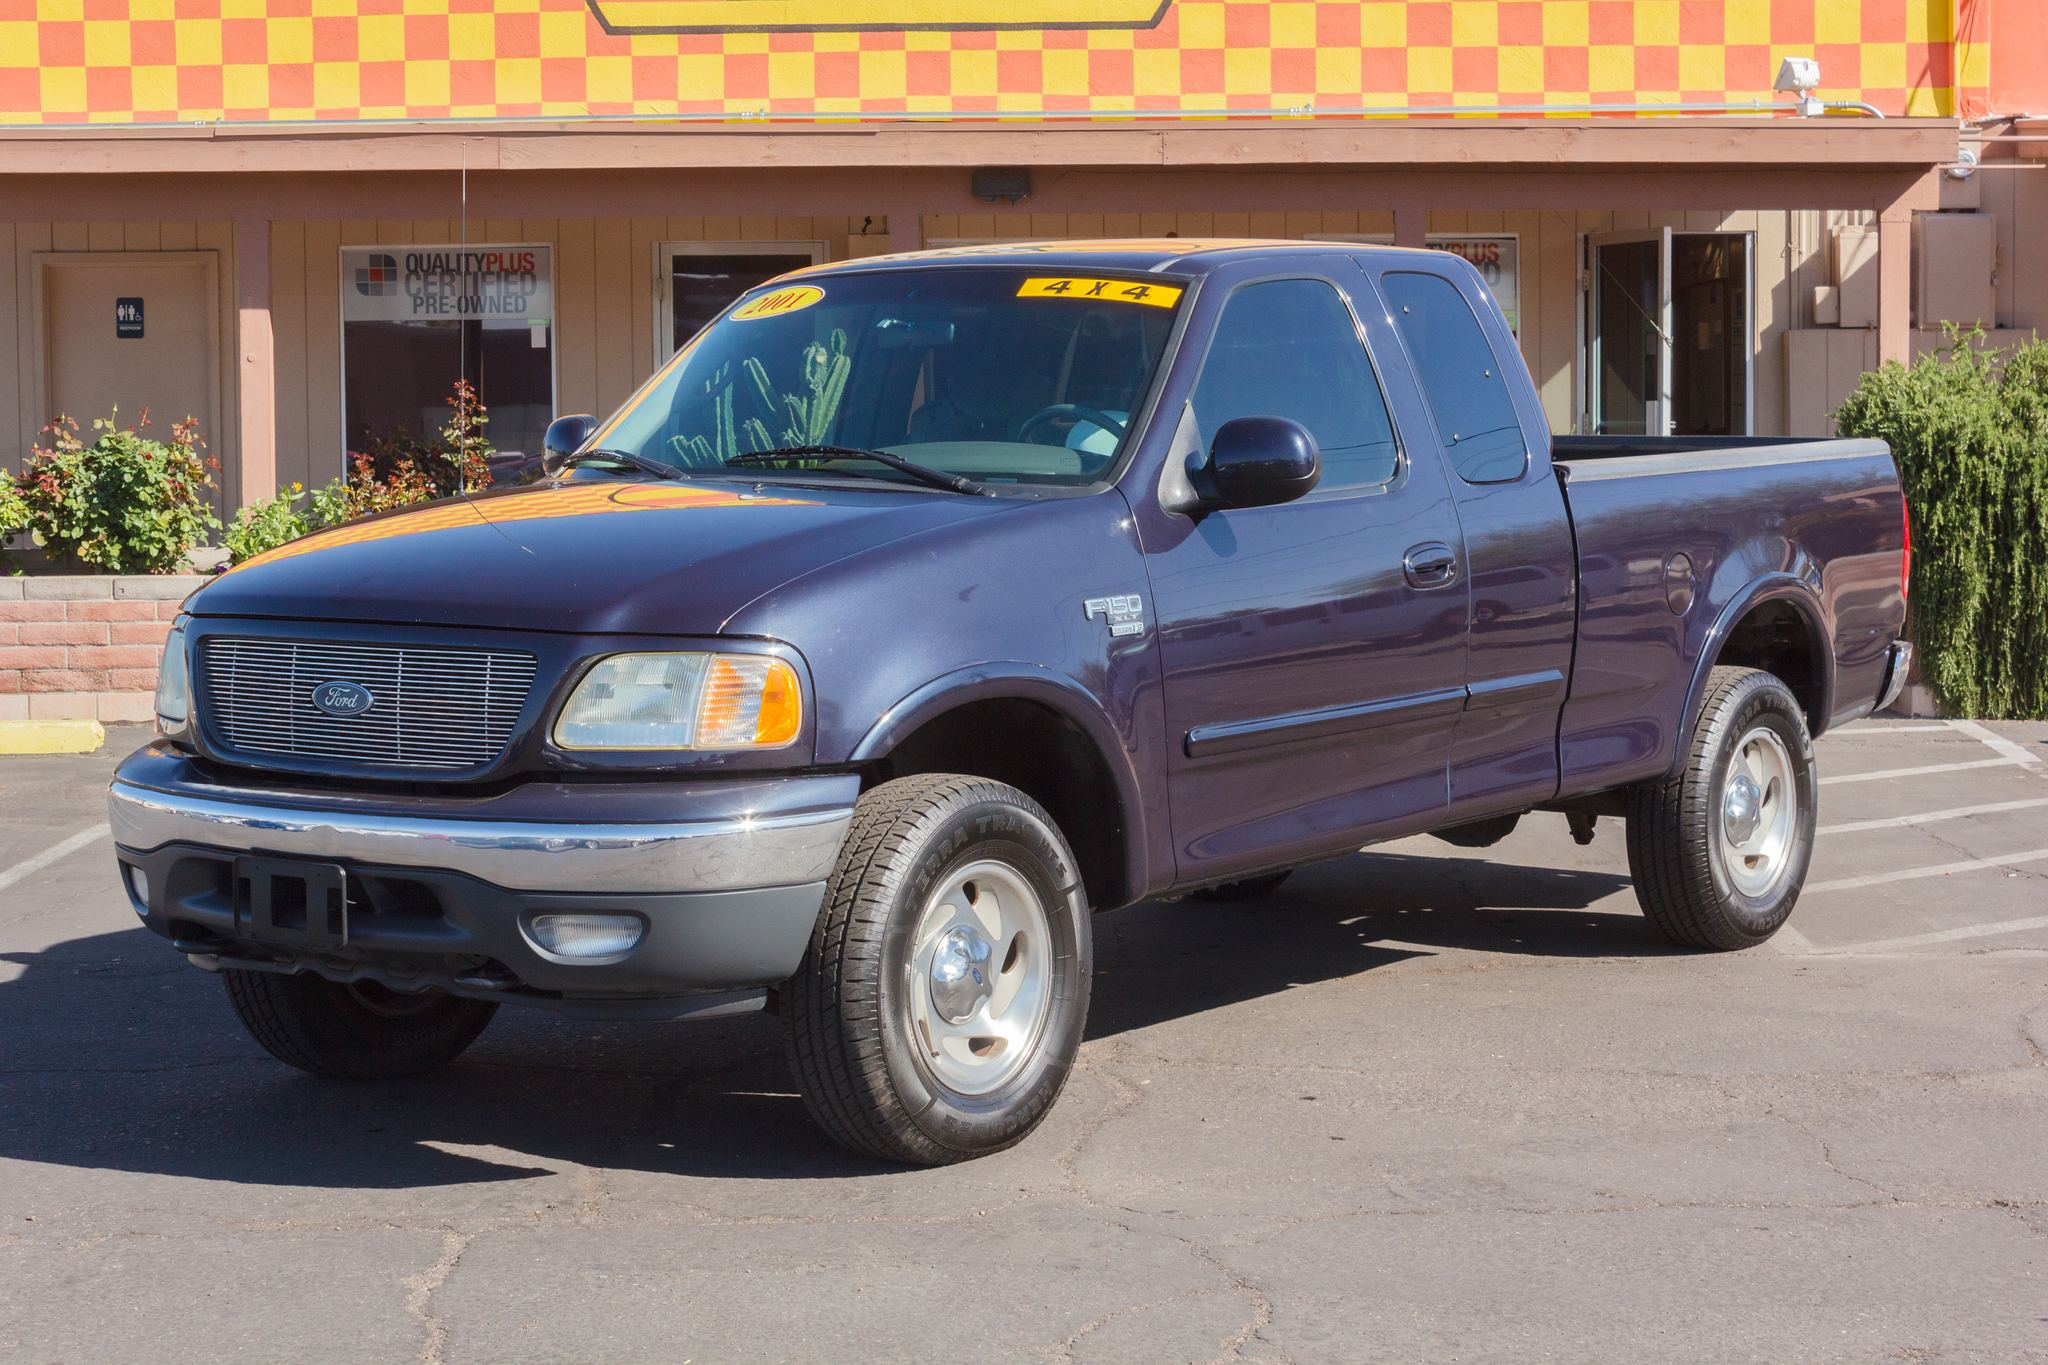 Photo of 2001 Ford F150 4WD Supercab XLT Charcoal Blue Clearcoat Metallic